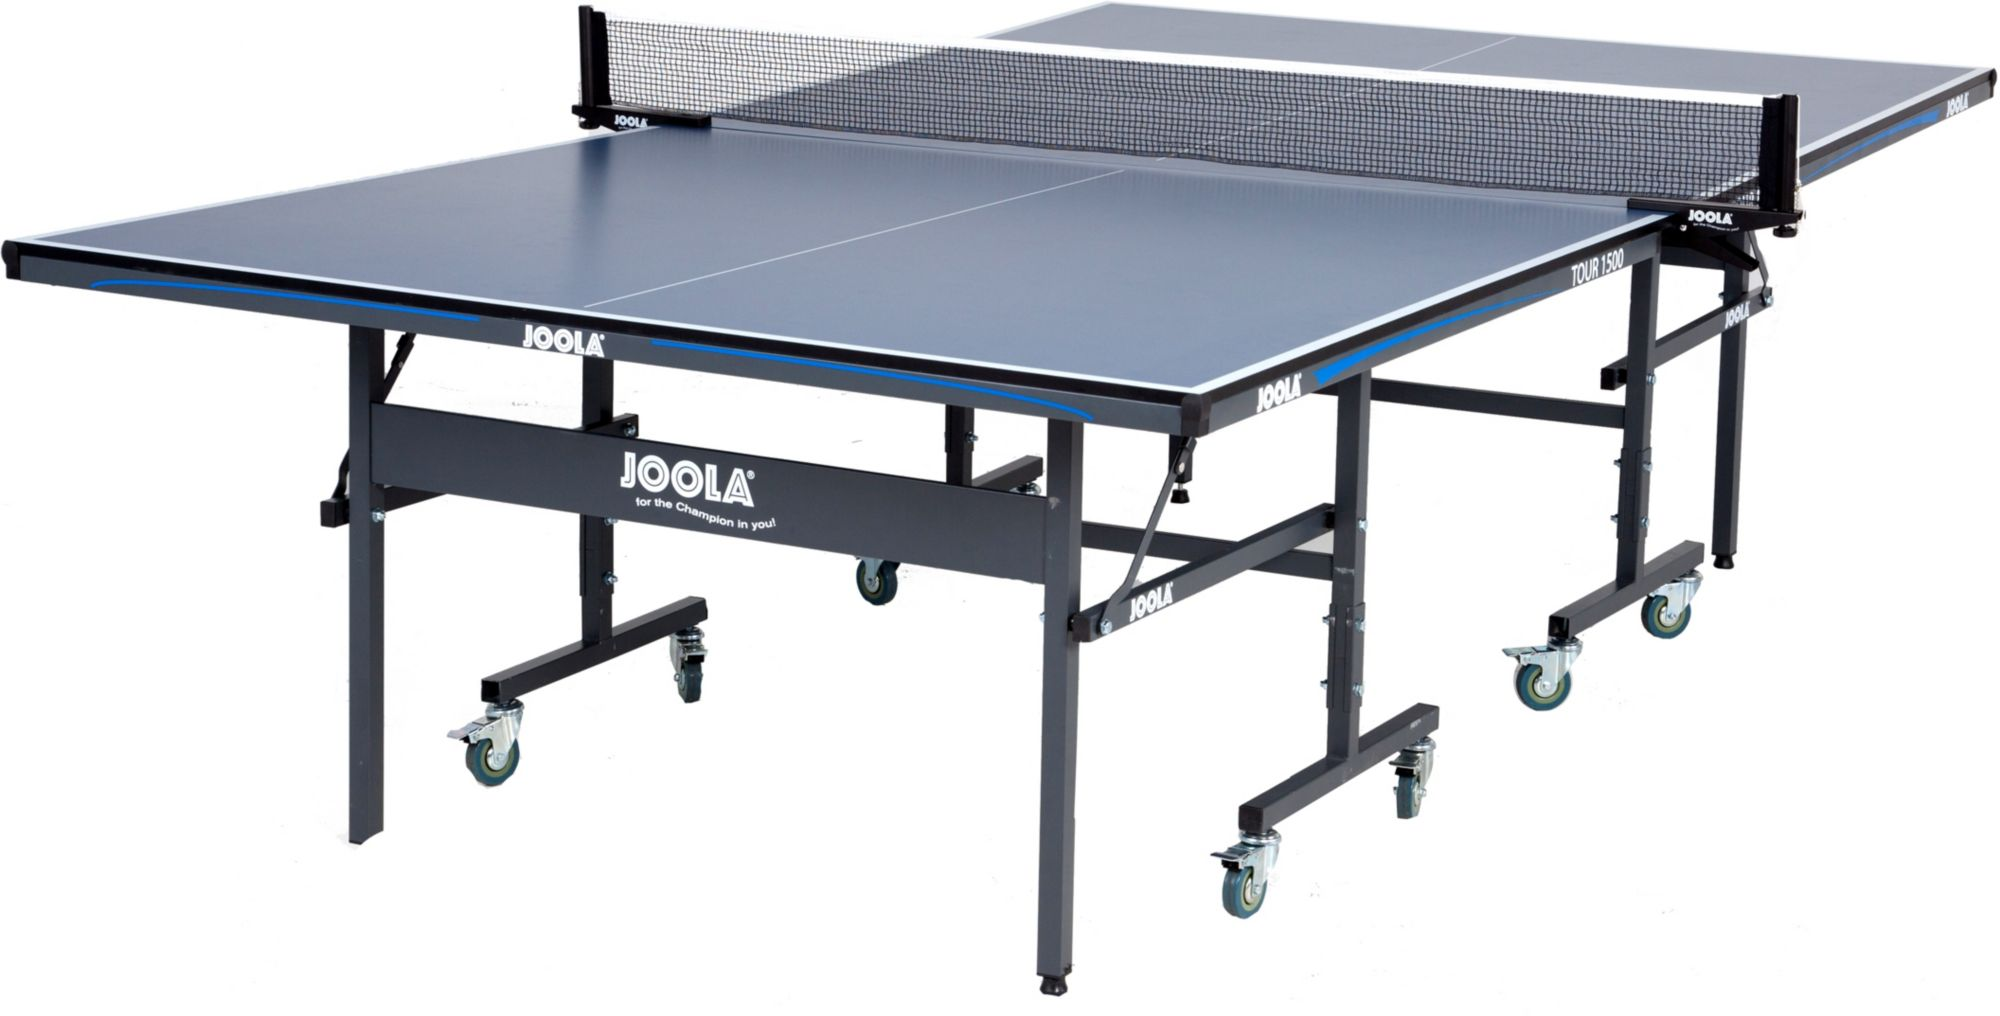 JOOLA Tour 1500 Indoor Table Tennis Table with Net Set (15mm Thick) | DICKu0027S Sporting Goods  sc 1 st  DICKu0027S Sporting Goods & JOOLA Tour 1500 Indoor Table Tennis Table with Net Set (15mm Thick ...